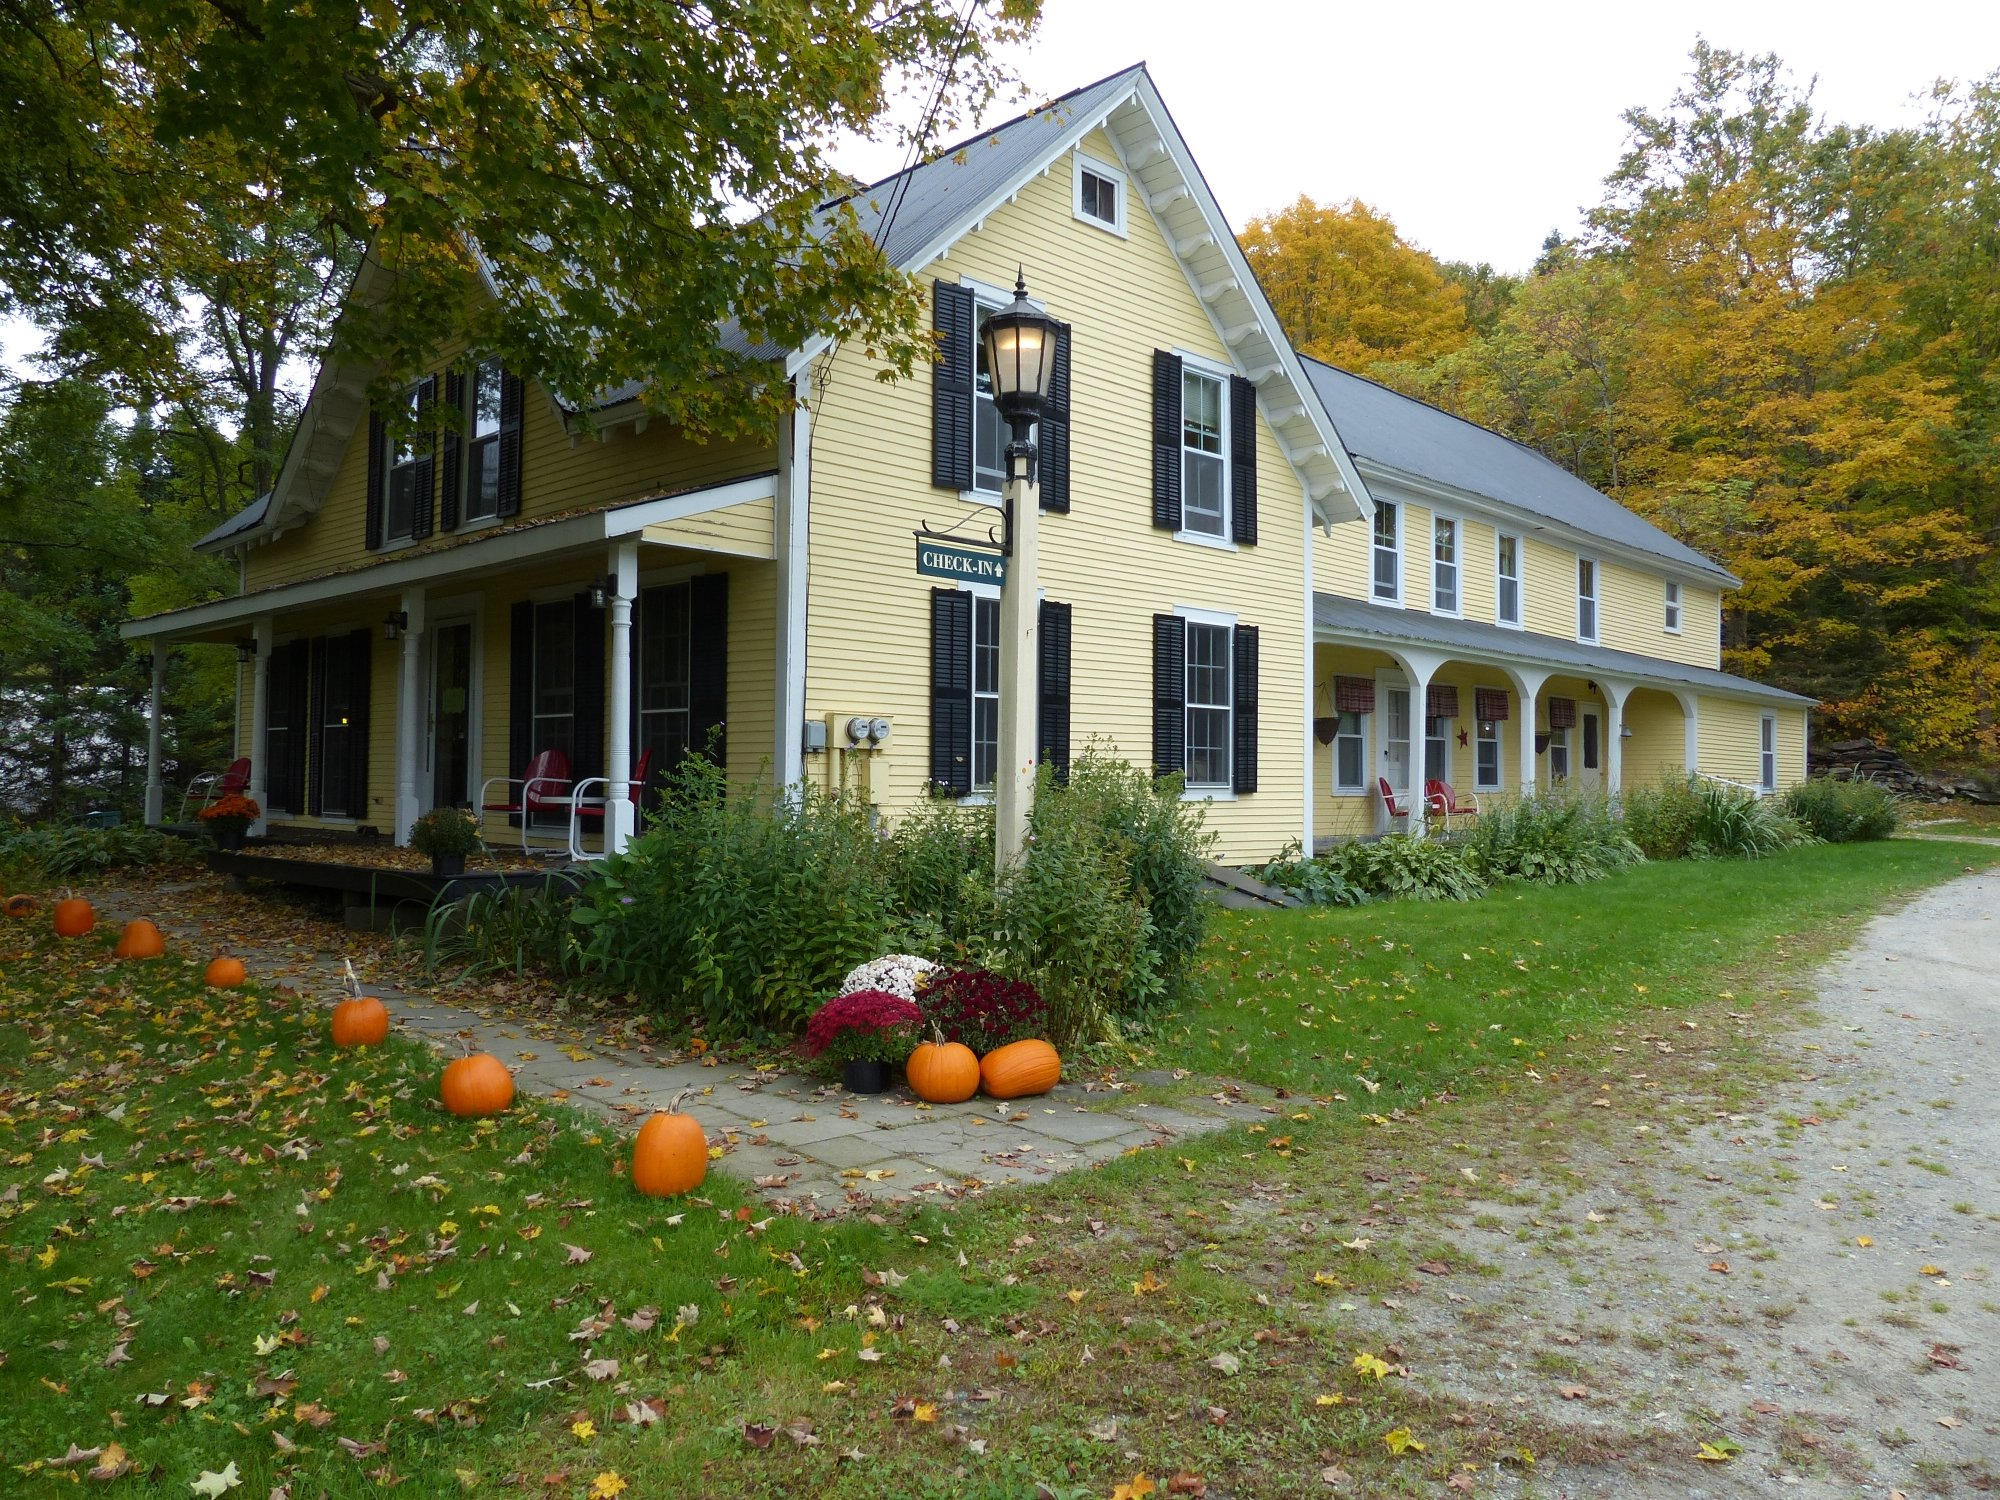 Wilder Farm Inn B&B